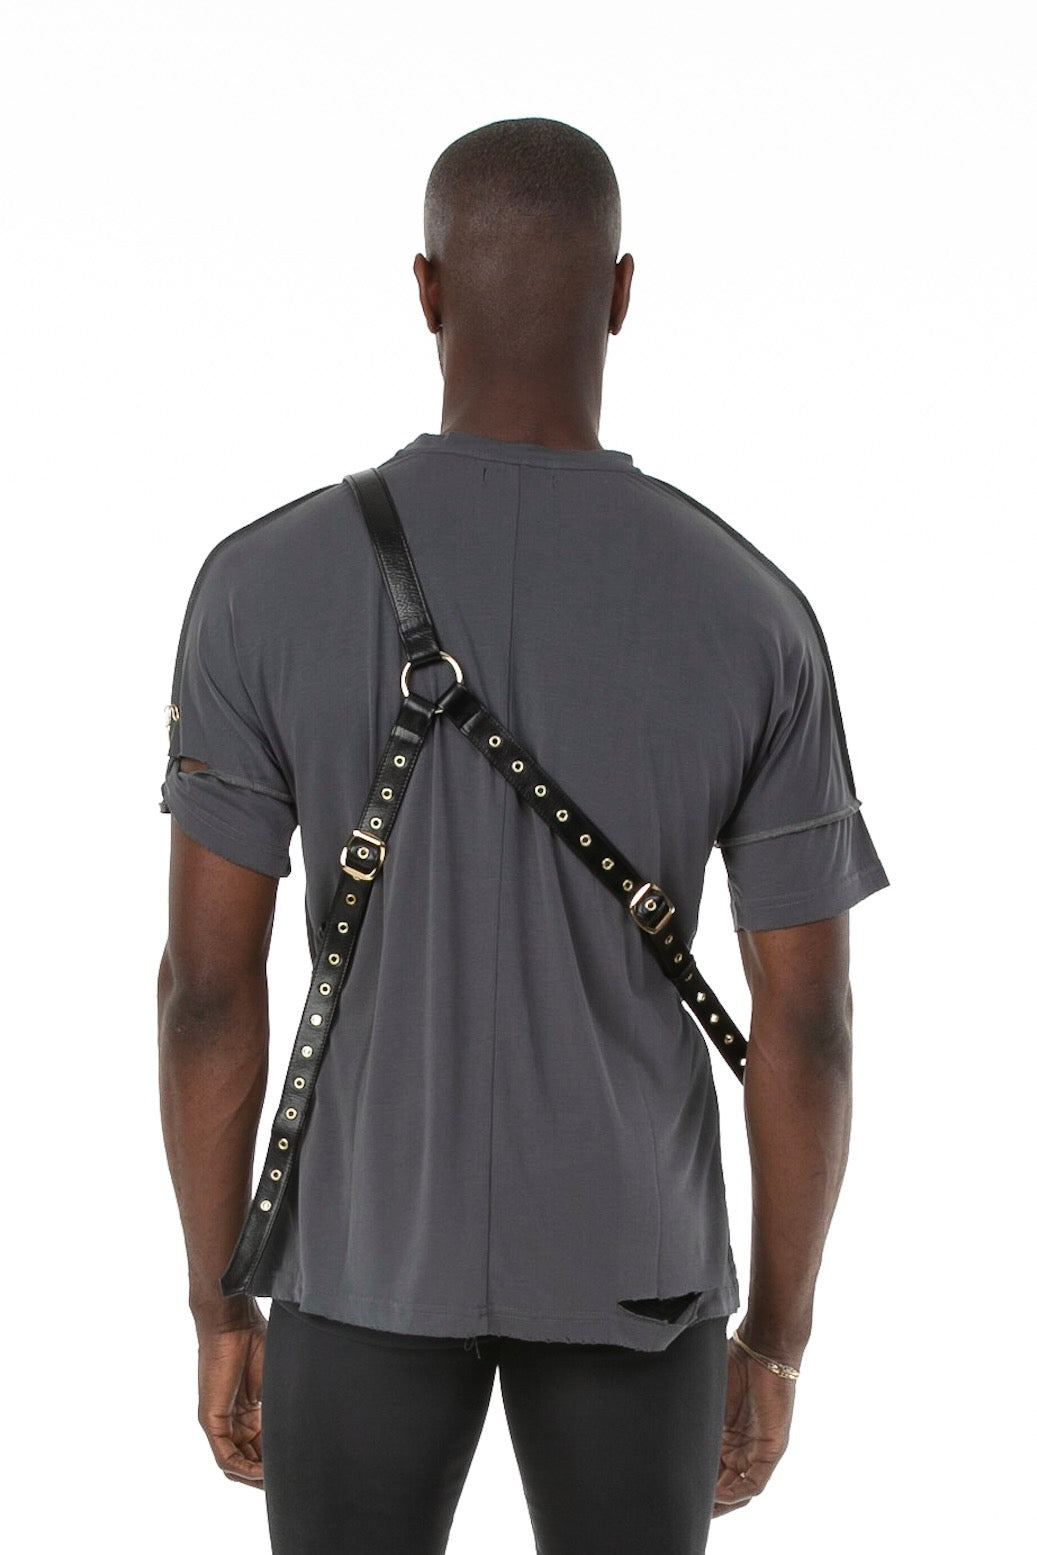 Backside of male model wearing Holster Bag in Black